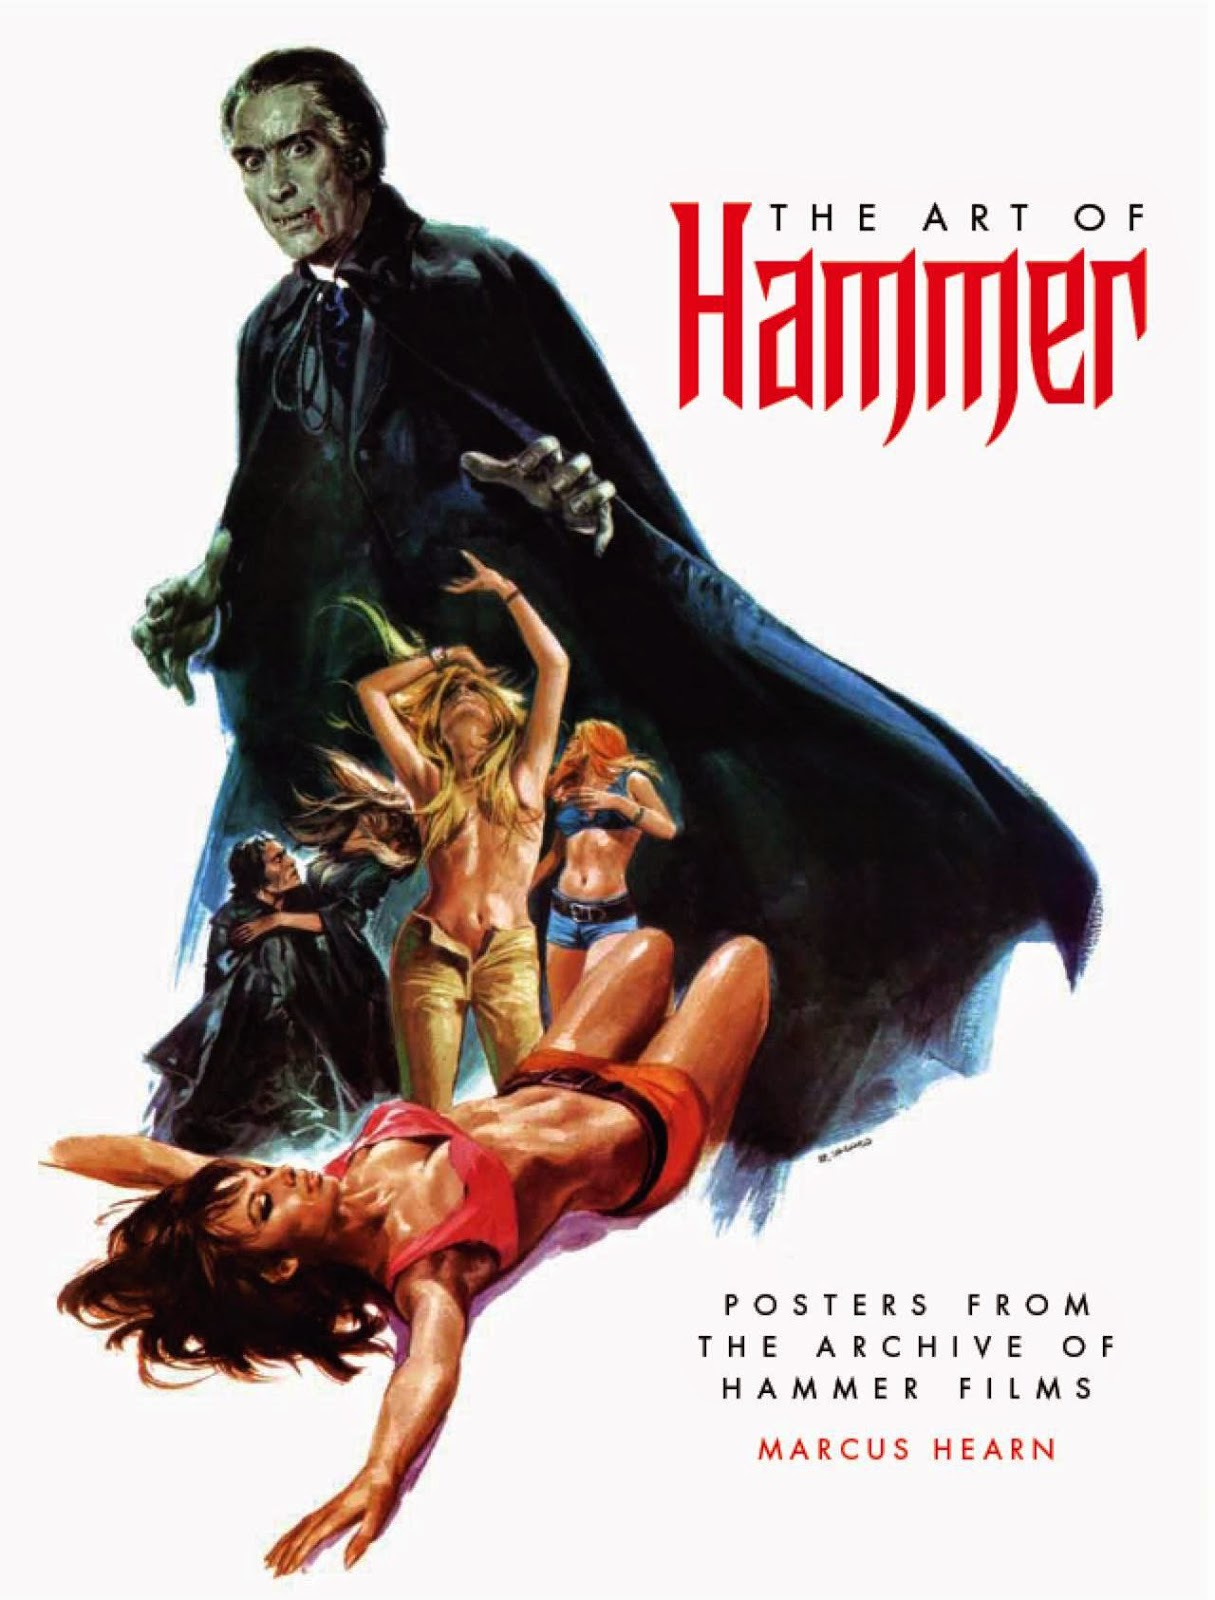 http://titanbooks.com/the-art-of-hammer-posters-from-the-archive-of-hammer-films-4828/